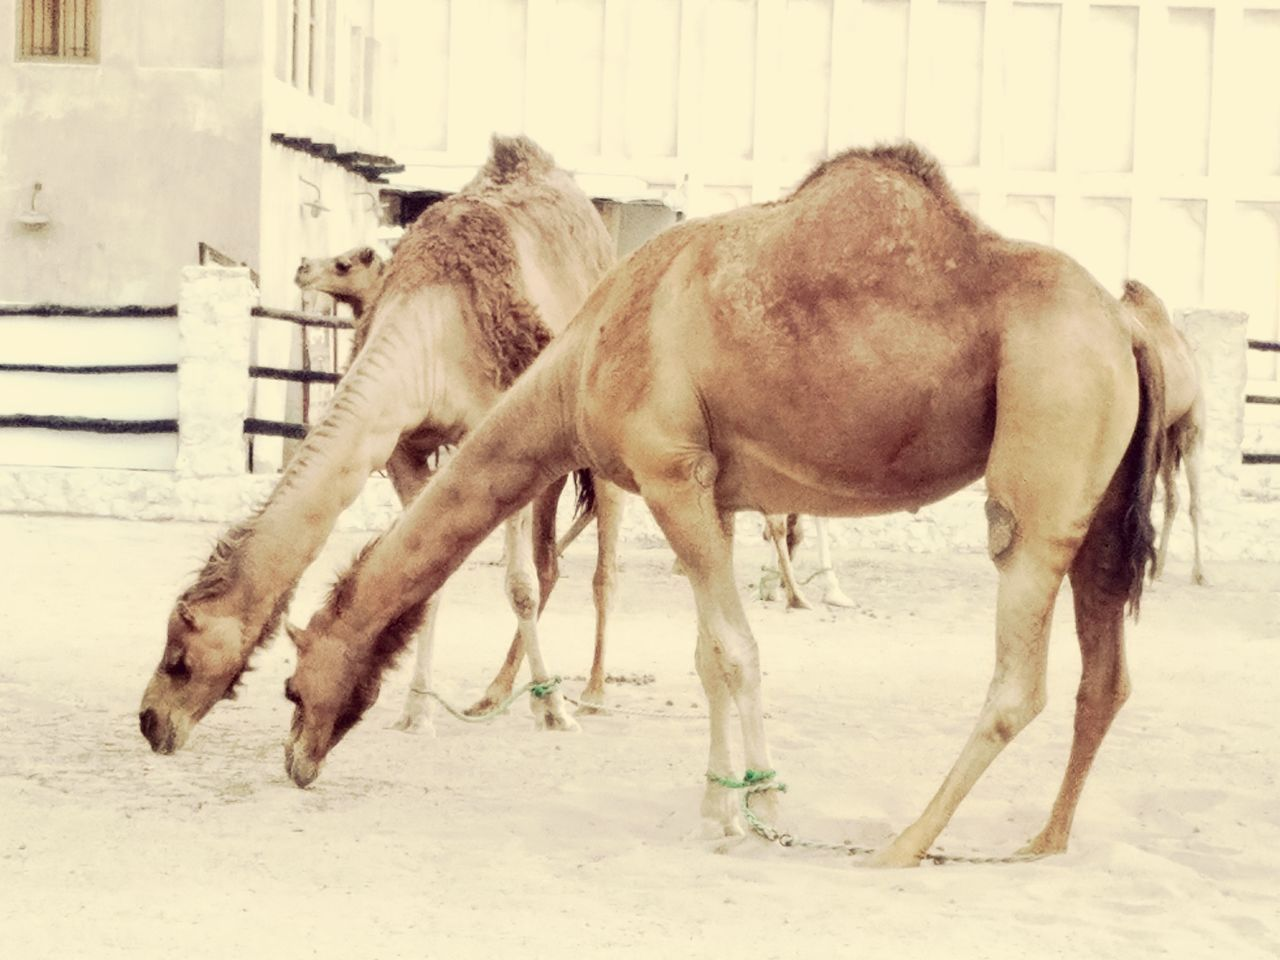 horse, domestic animals, animal themes, mammal, livestock, herbivorous, two animals, sand, no people, day, outdoors, nature